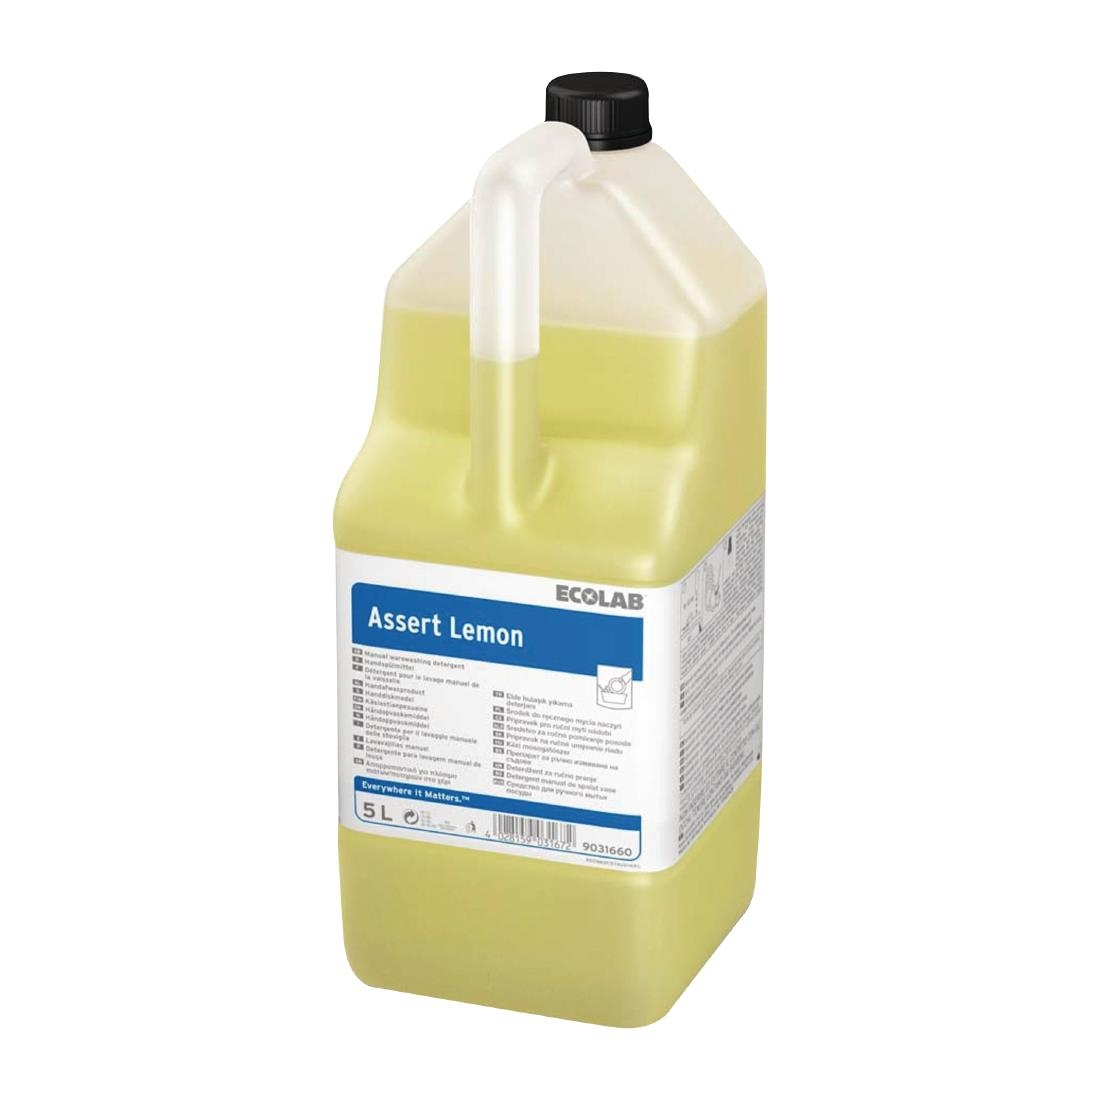 Image of Ecolab Assert Lemon Washing Up Liquid Concentrate 5Ltr (2 Pack) Pack of 2